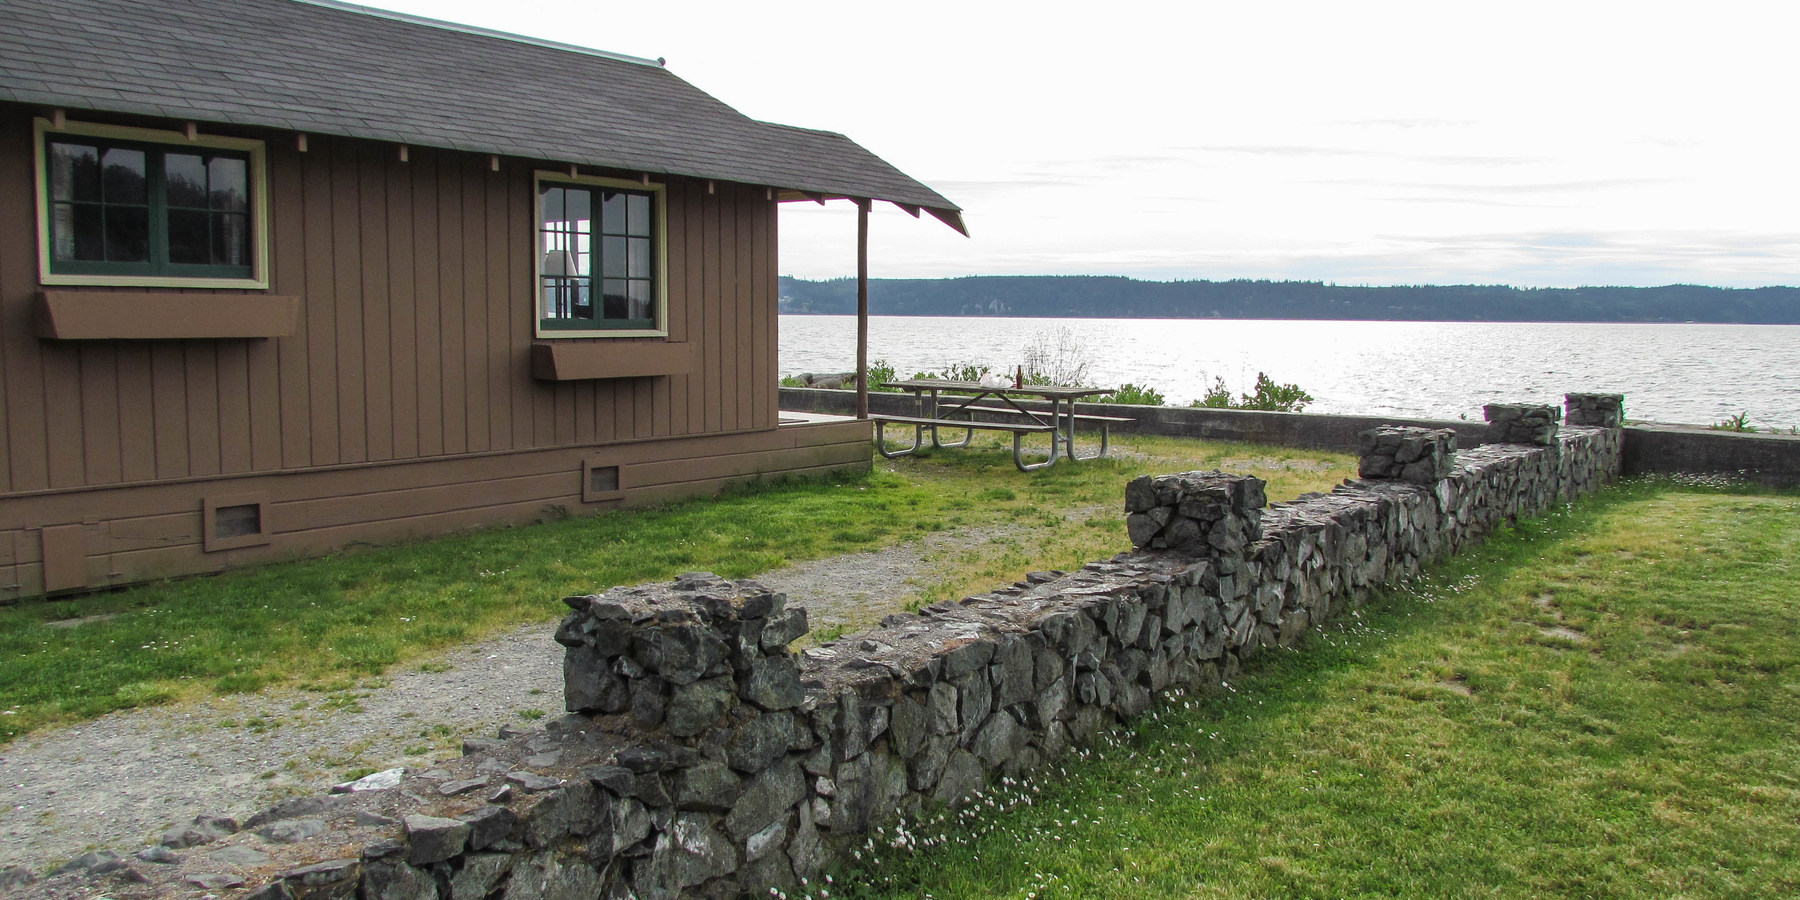 ... Waterfront Cabins Look Out To Whidbey Island From Cama Beach State Park.